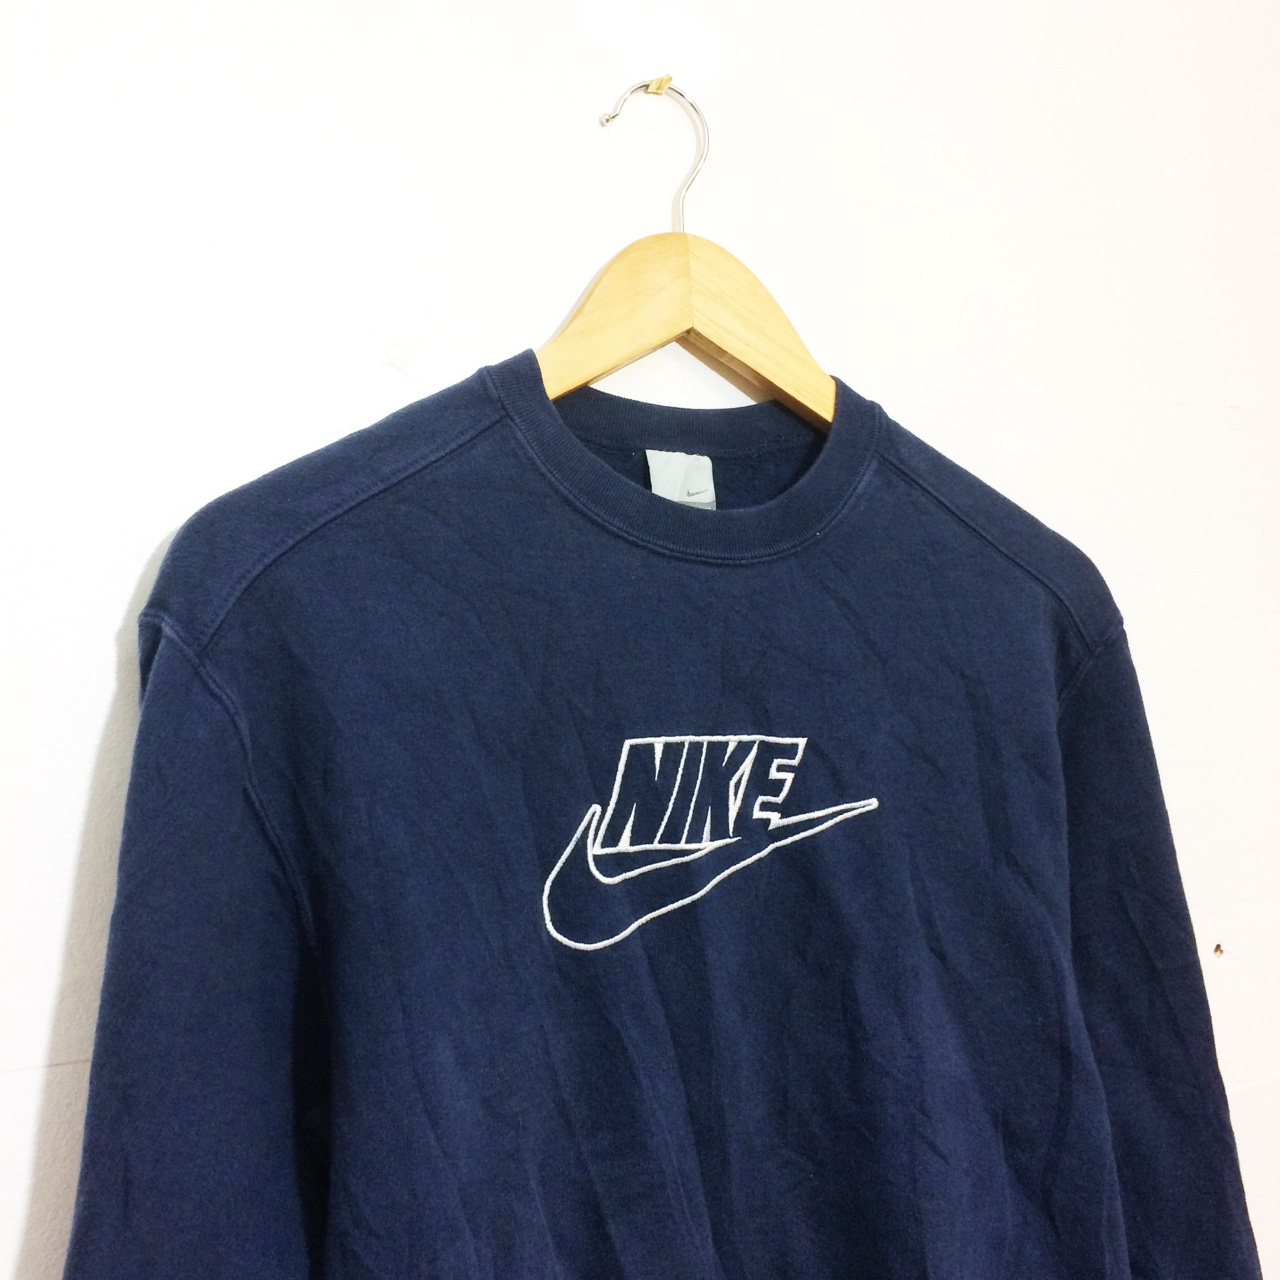 Listed on Depop by thejumperjunction